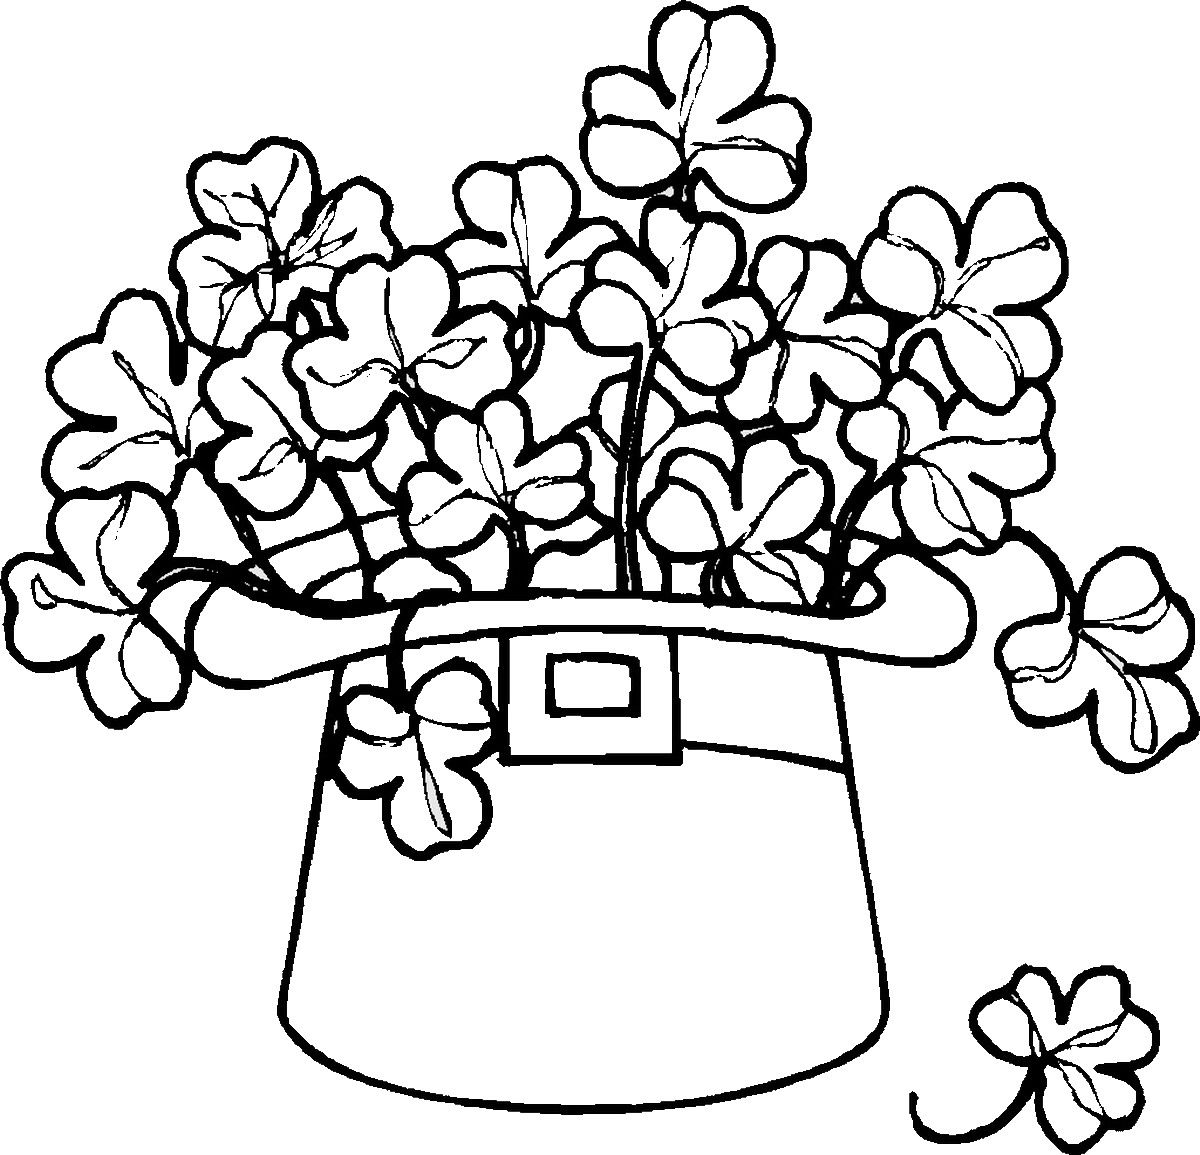 21 Awesome Picture Of Leprechaun Coloring Pages Coloring Pages Flower Coloring Pages Cartoon Coloring Pages [ 1155 x 1200 Pixel ]